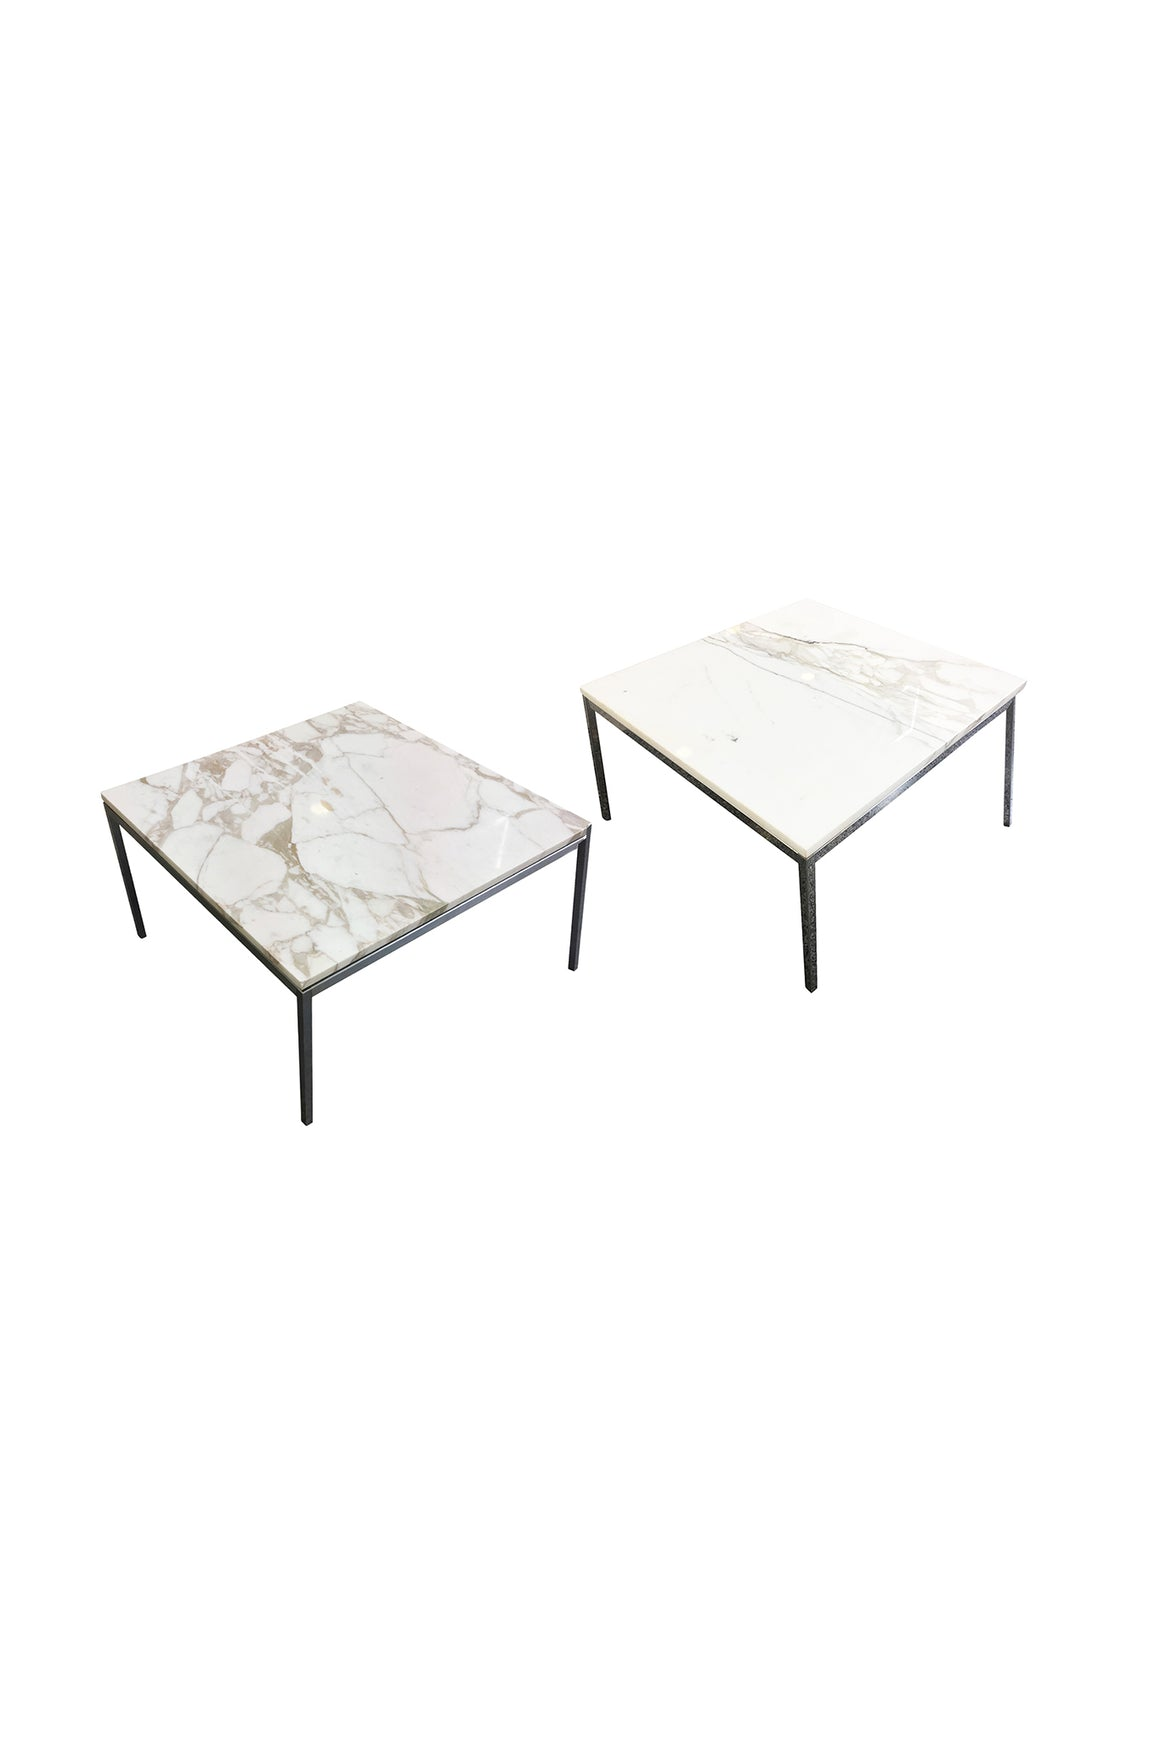 Knoll-Attributed White Marble-Top Side Table - 2 Available